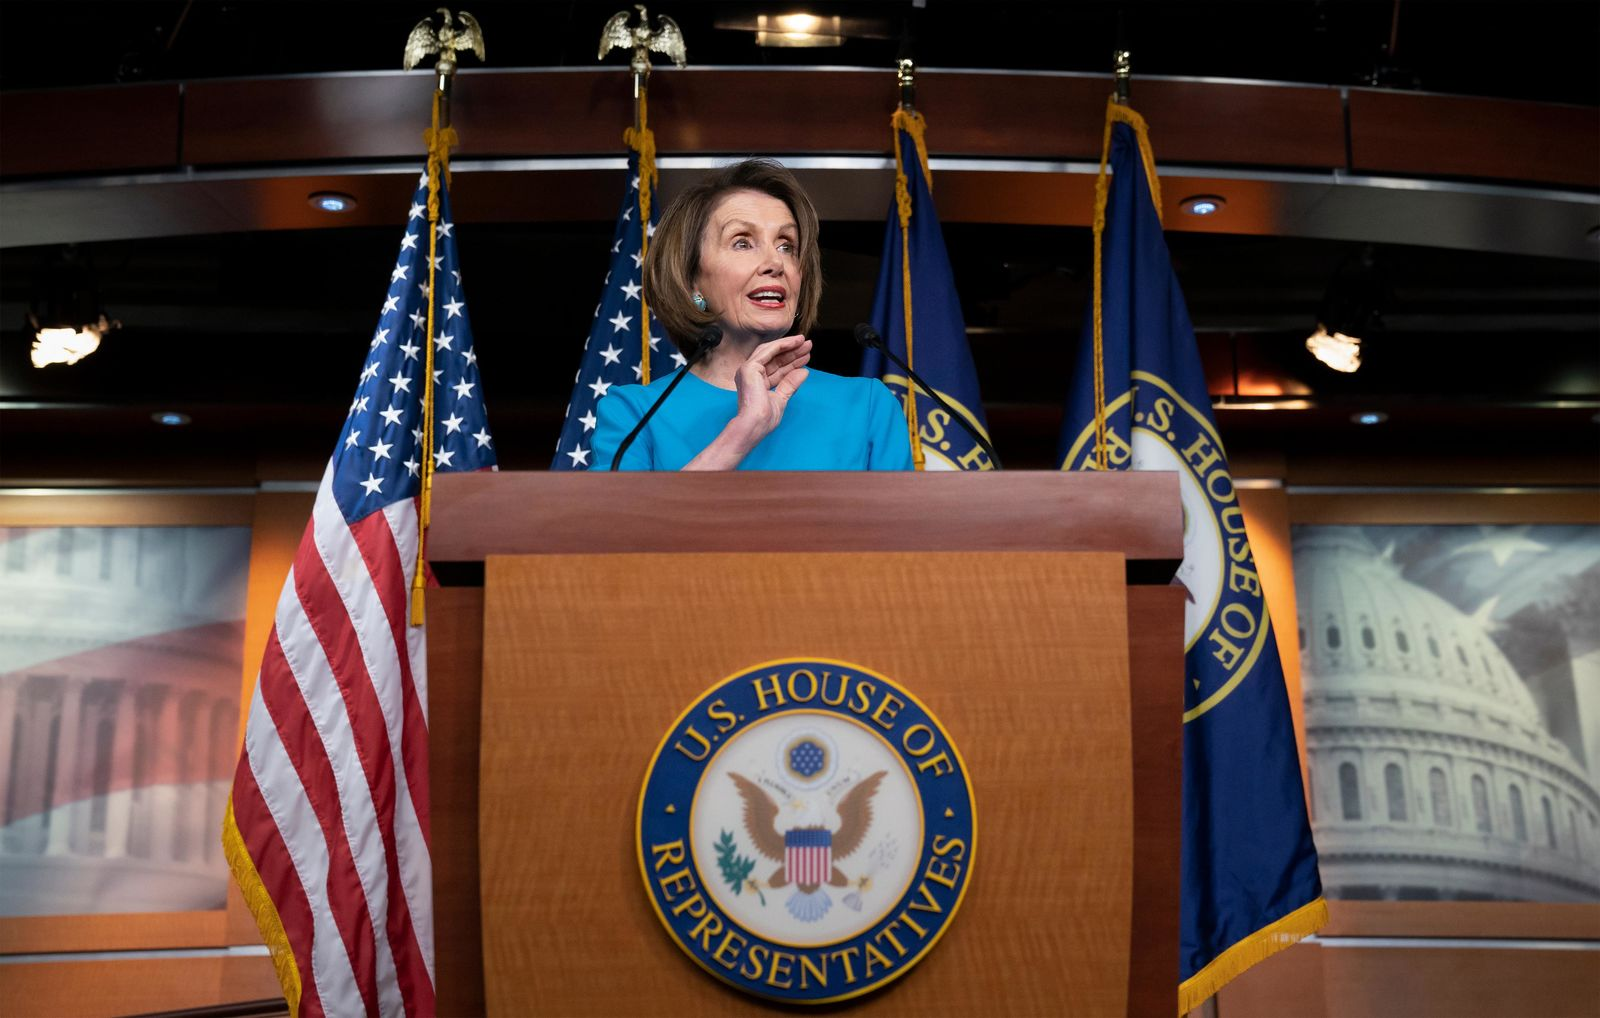 In this May 16, 2019, photo, House Speaker Nancy Pelosi of Calif., speaks at the Capitol in Washington. (AP Photo/J. Scott Applewhite)